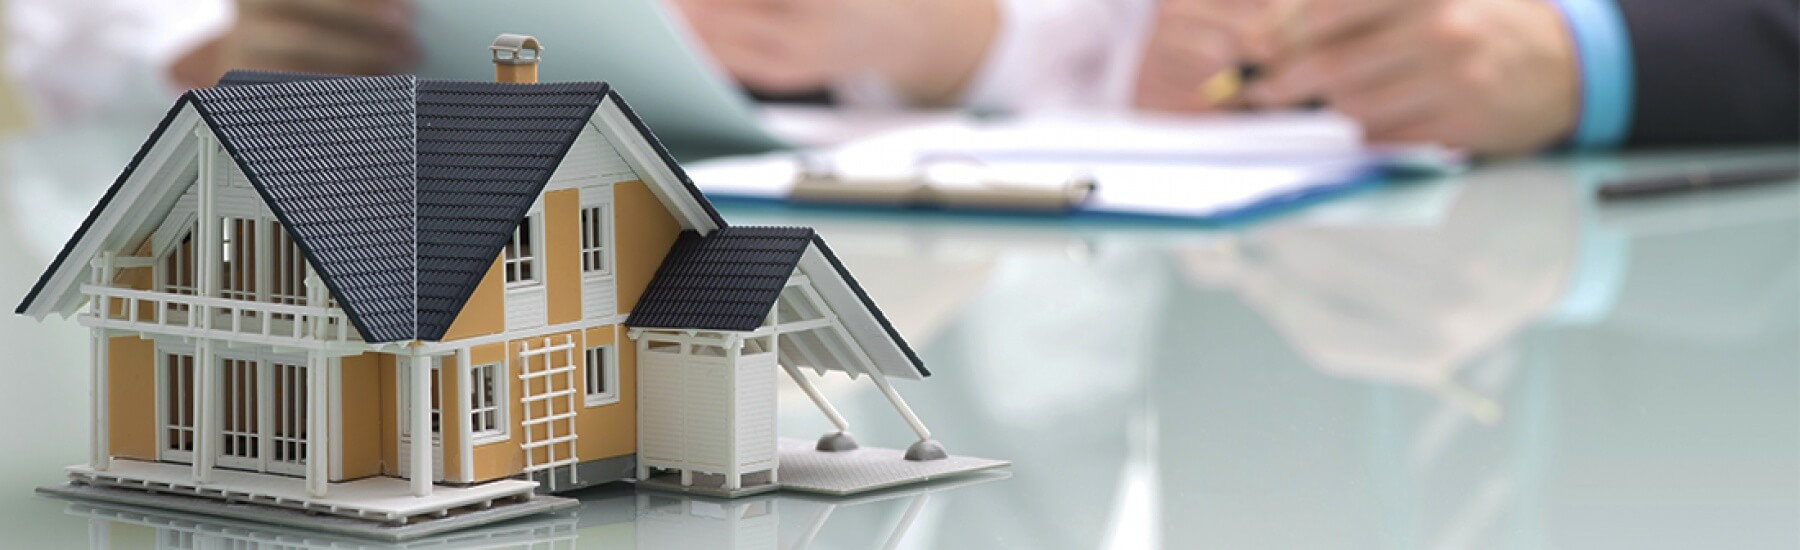 Stock photo - small model of house on table with people reviewing paperwork in the background.